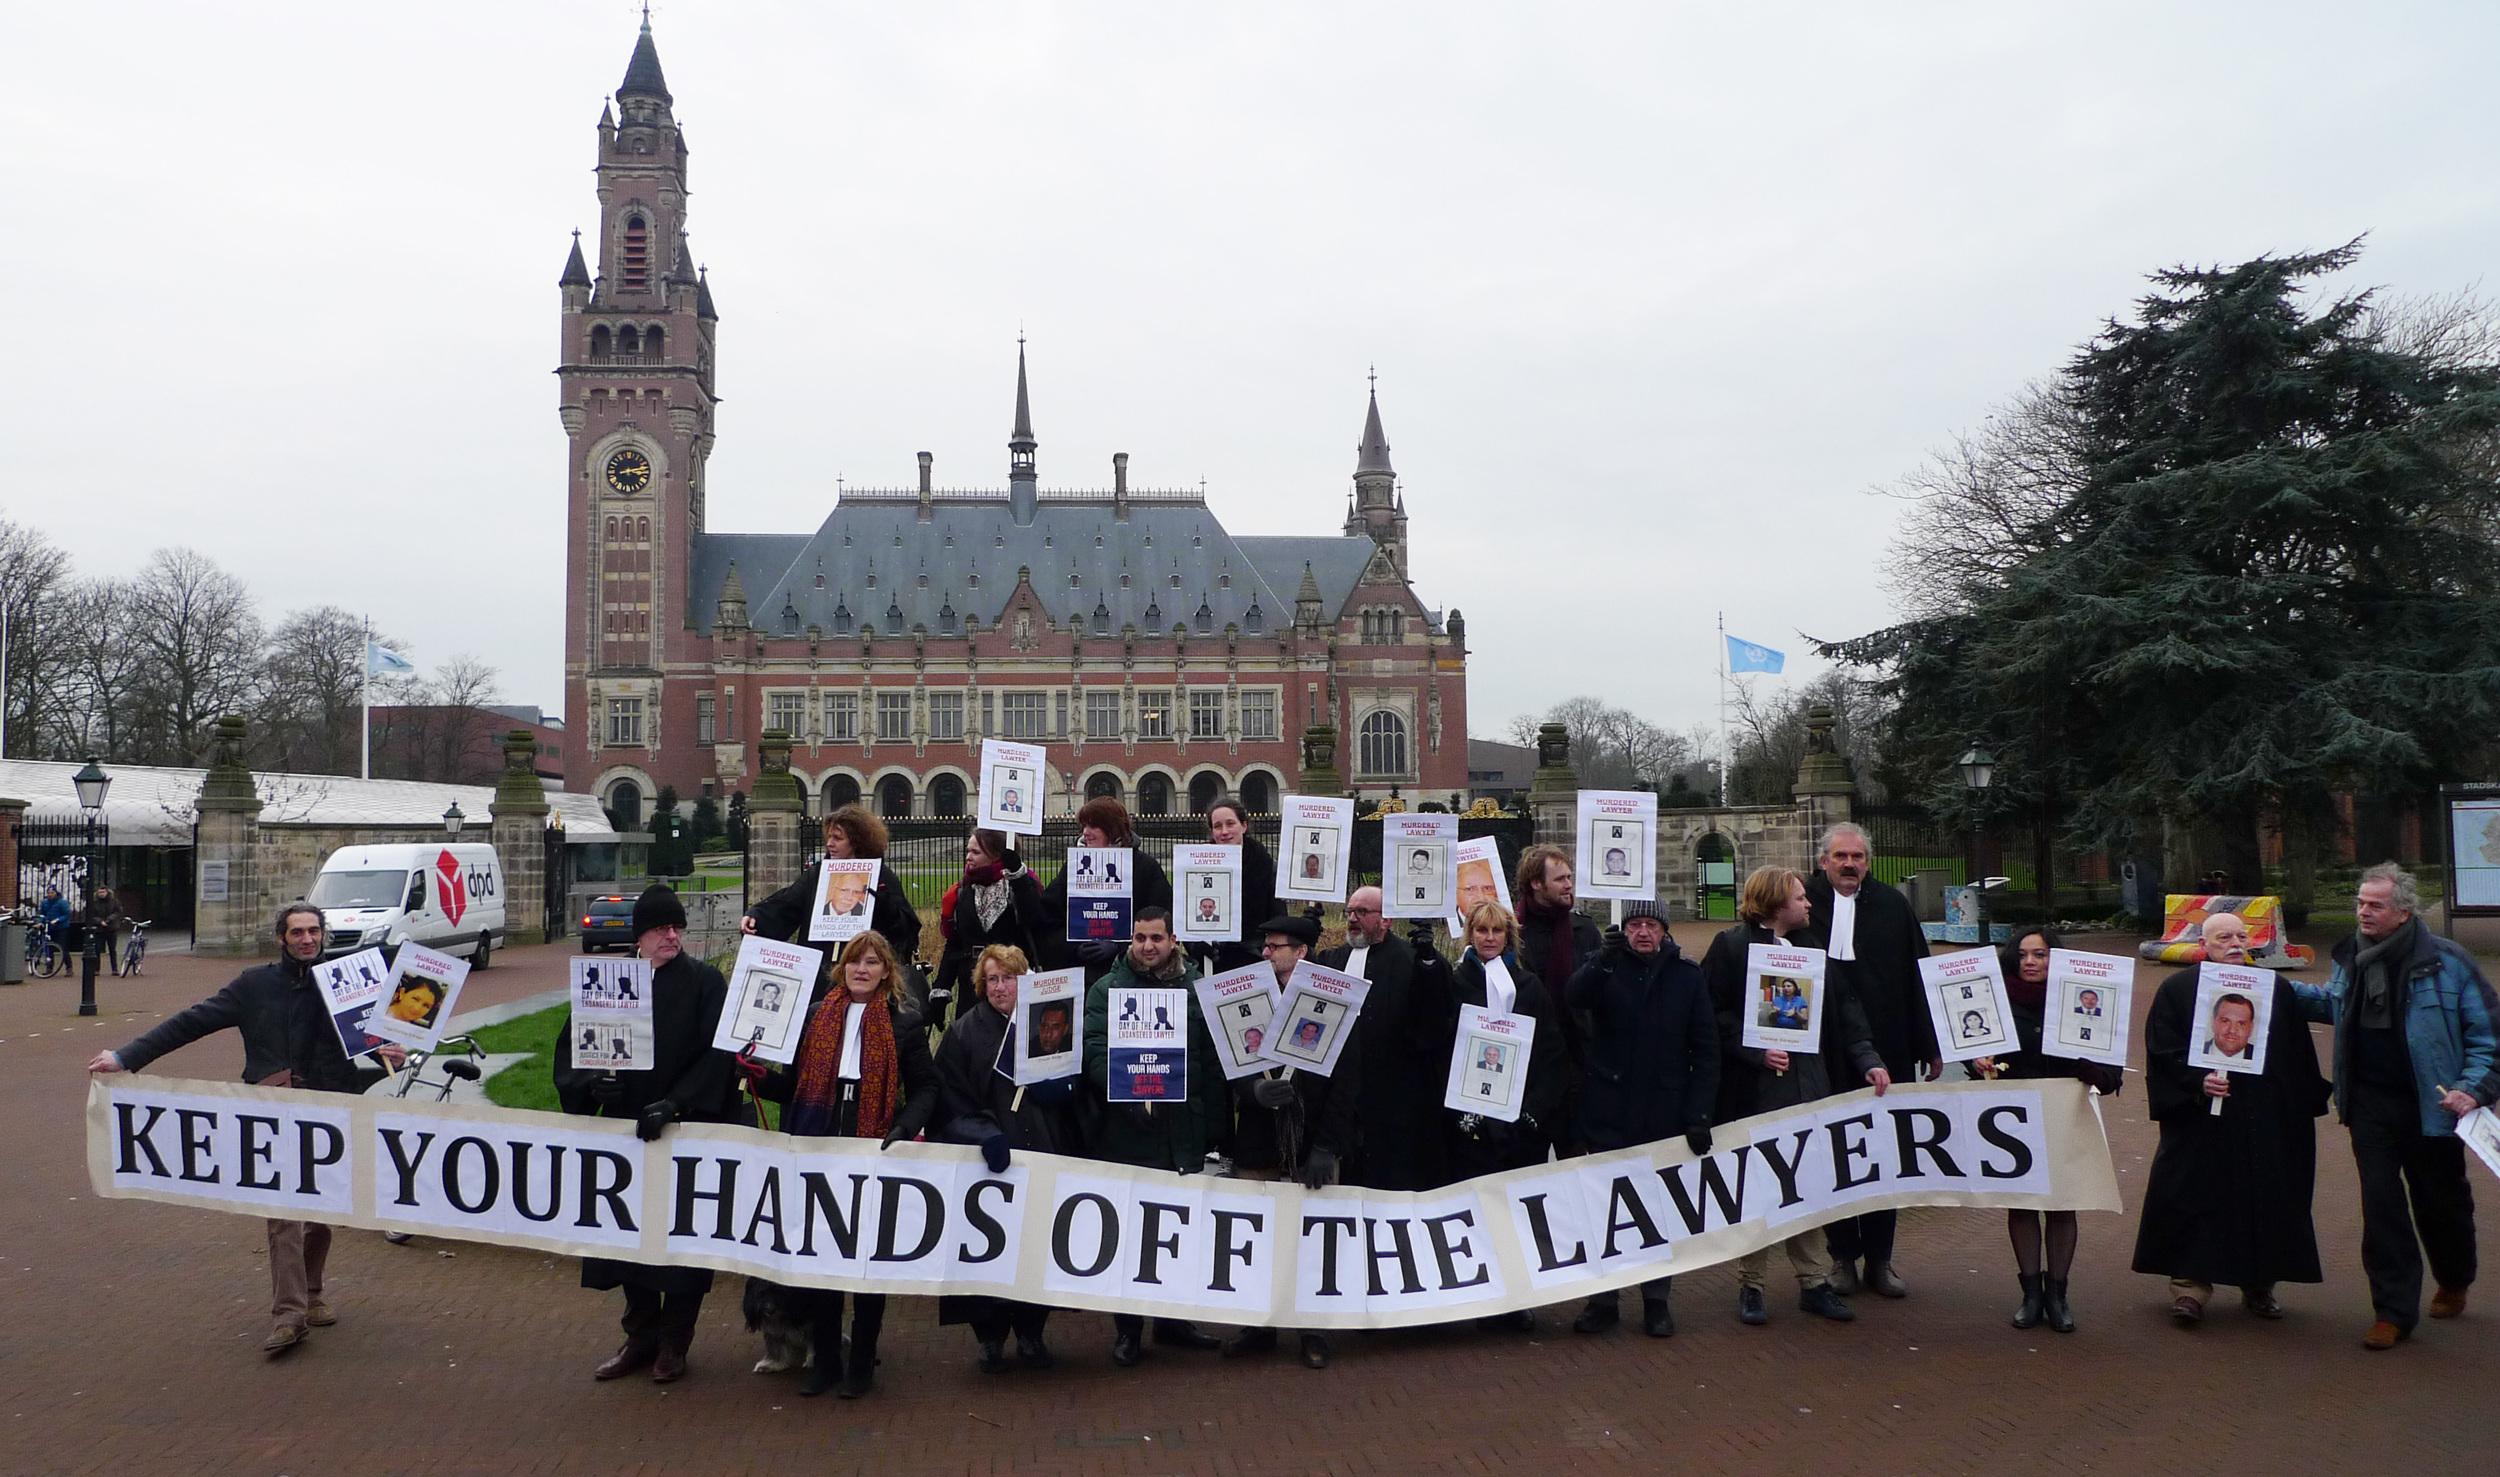 Protest in The Hague